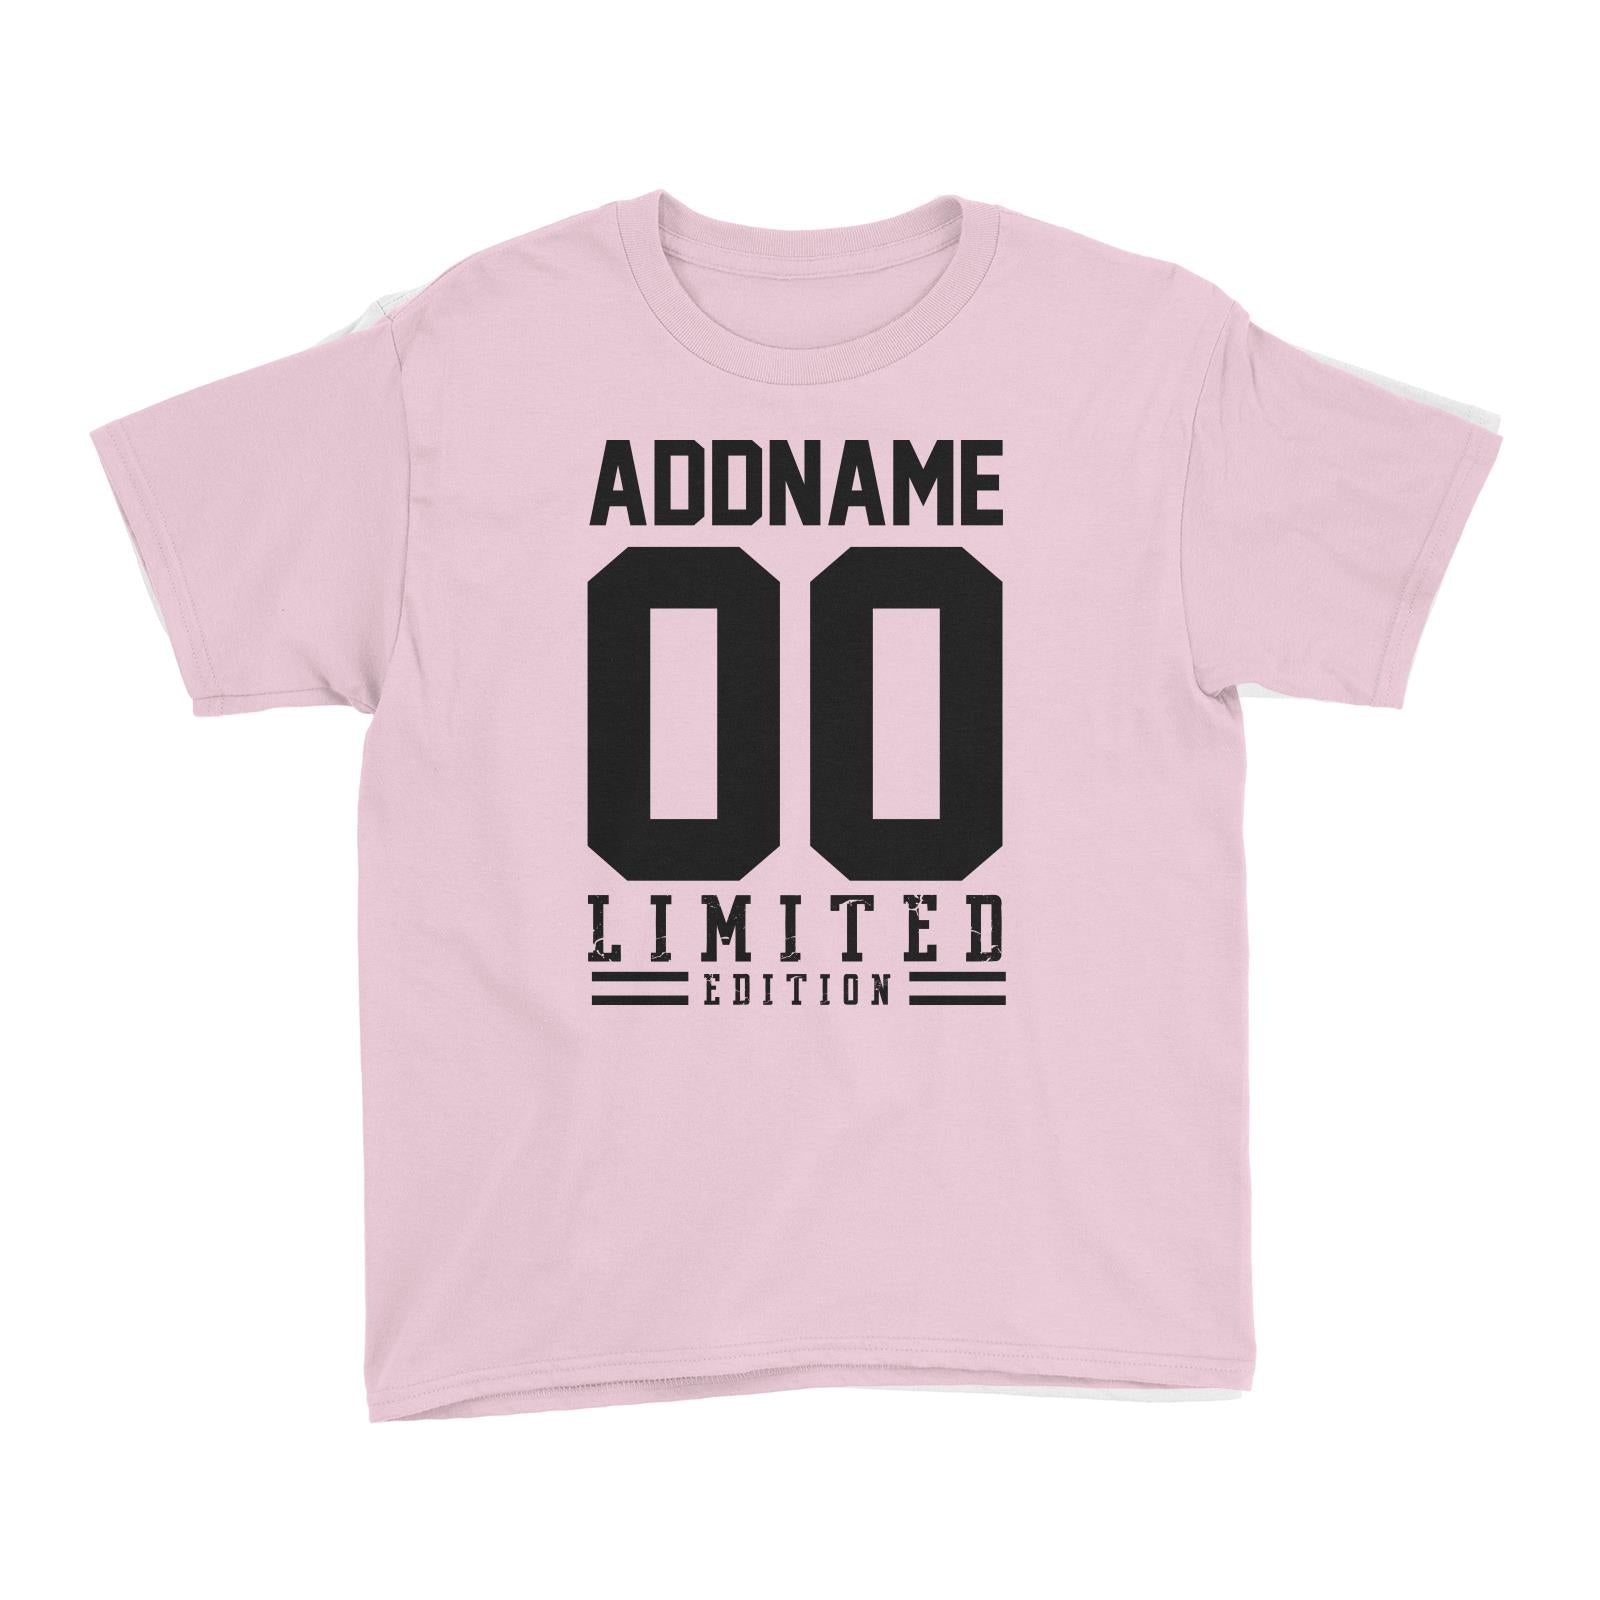 Limited Edition Jersey Personalizable with Name and Number Kid's T-Shirt